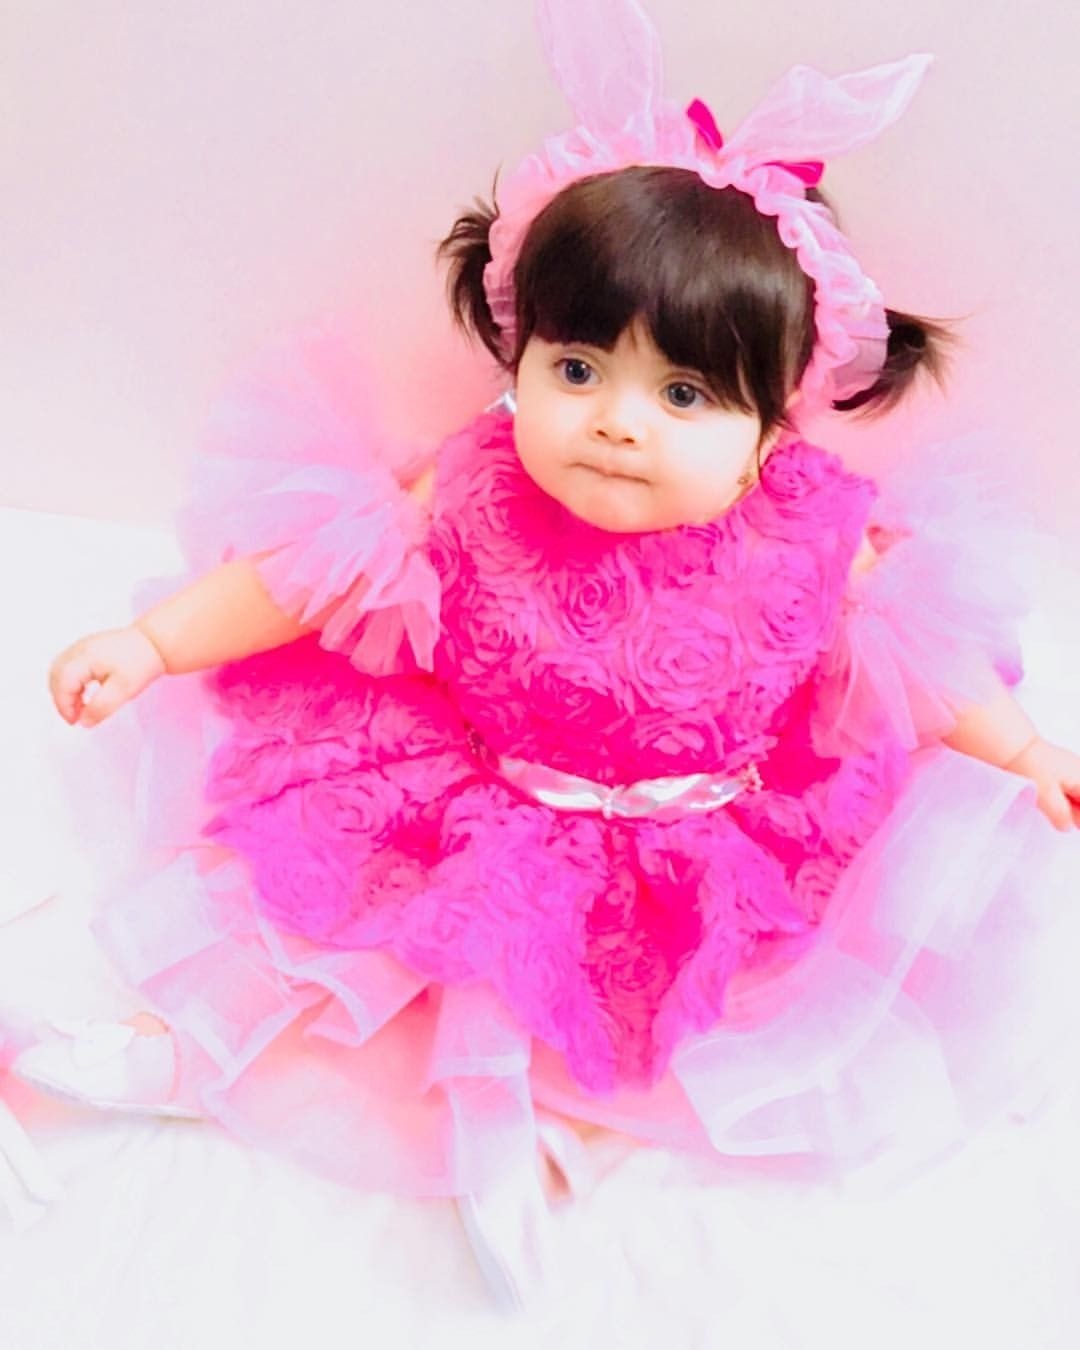 Delvin Baby Girl Dresses Cute Baby Wallpaper Baby Girl Fashion